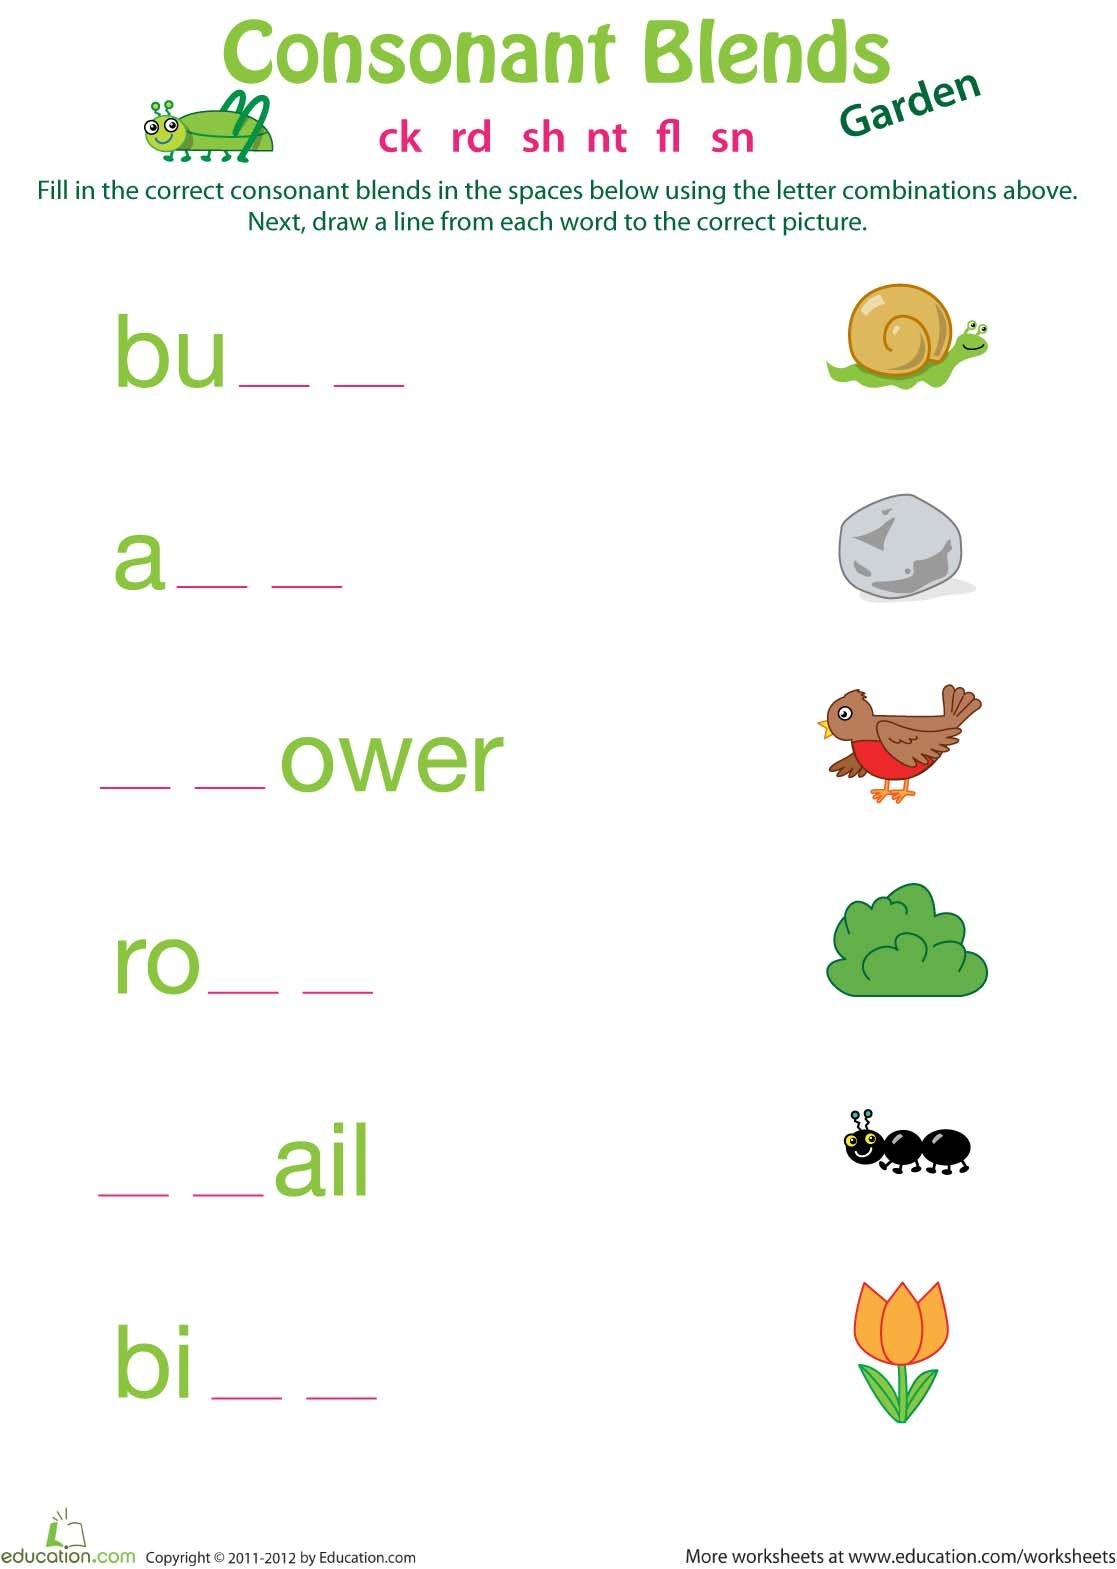 worksheet Blends Worksheets For Grade 1 pin by jc castilla on 1st grade spelling pinterest explore consonant blends worksheets and more